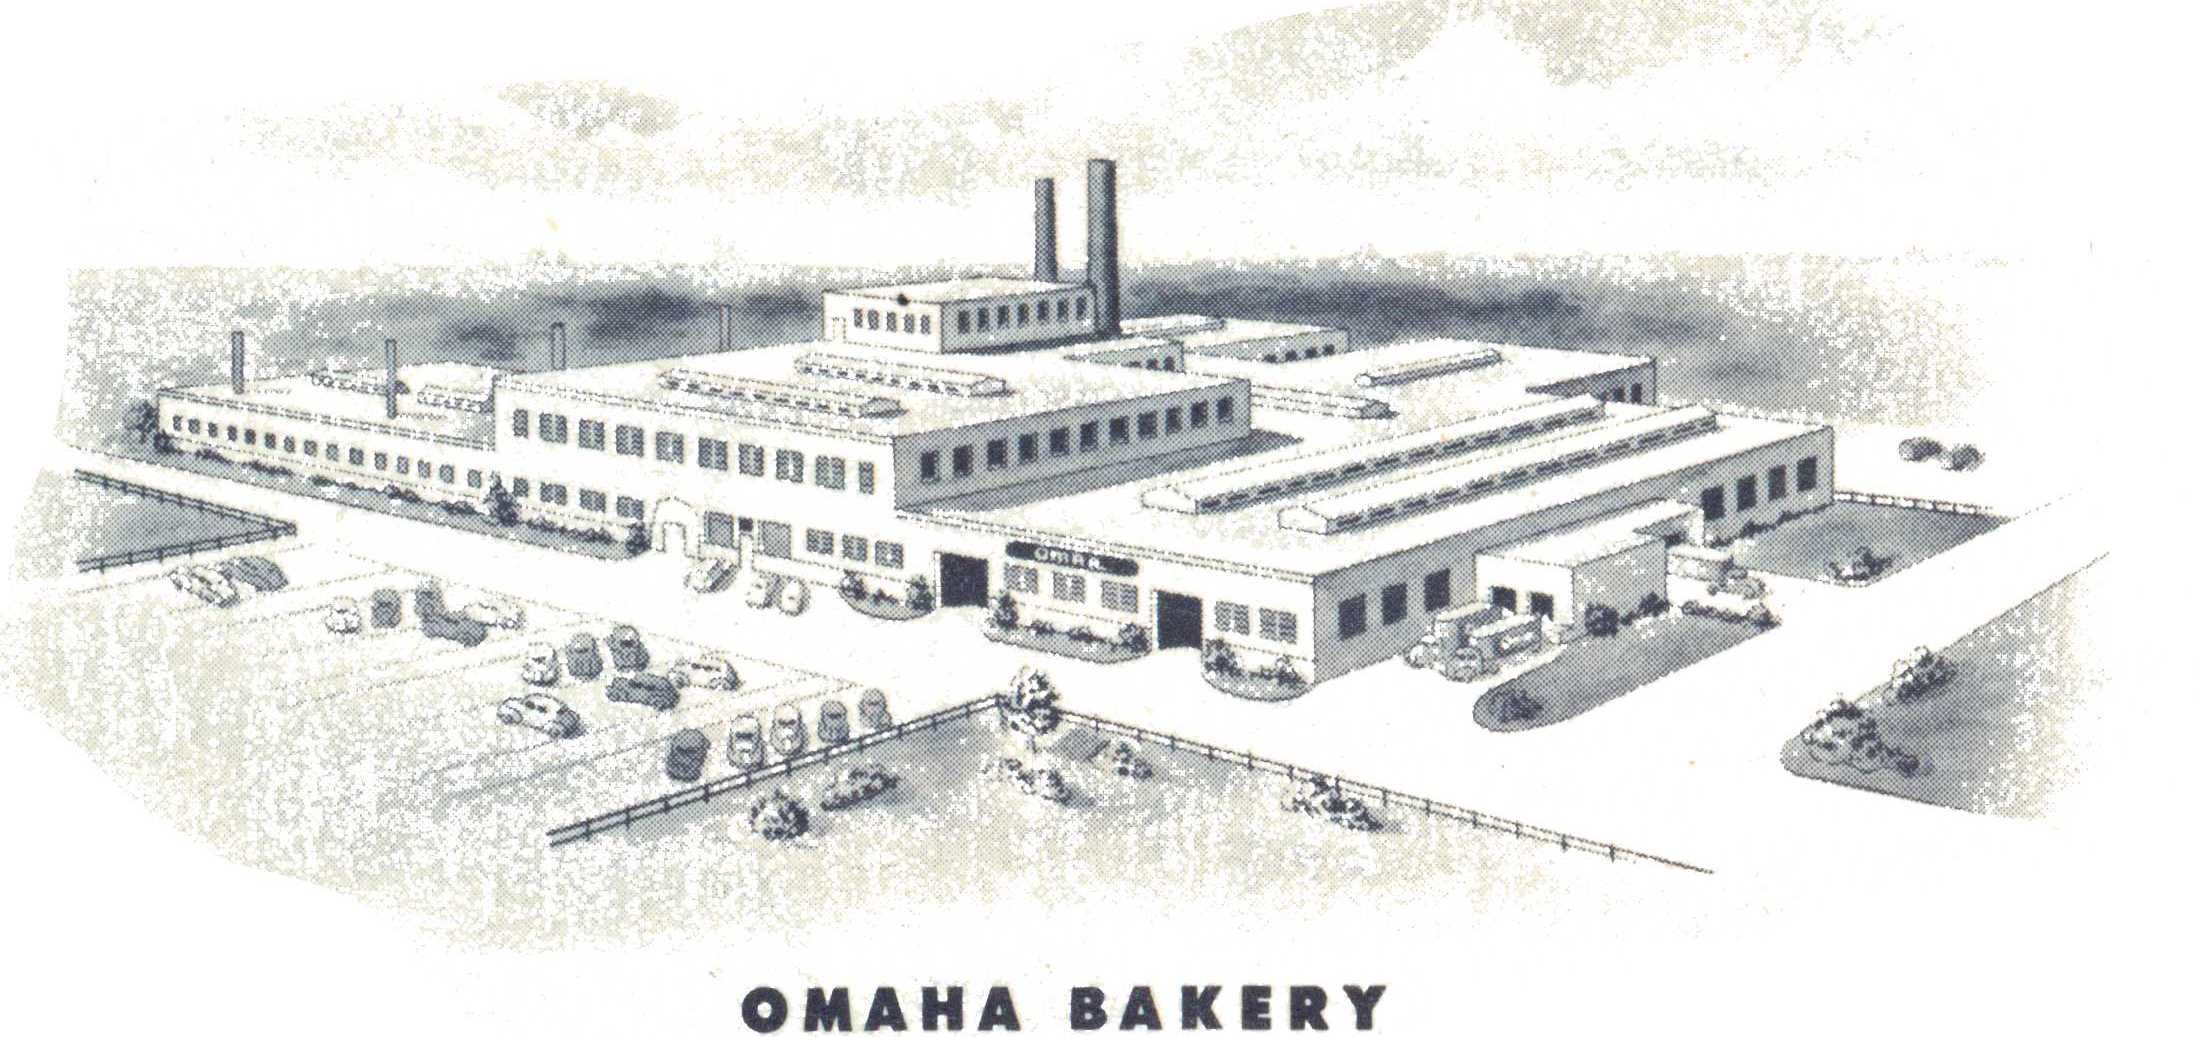 Rendition    Omar Baking Company Building - Omaha